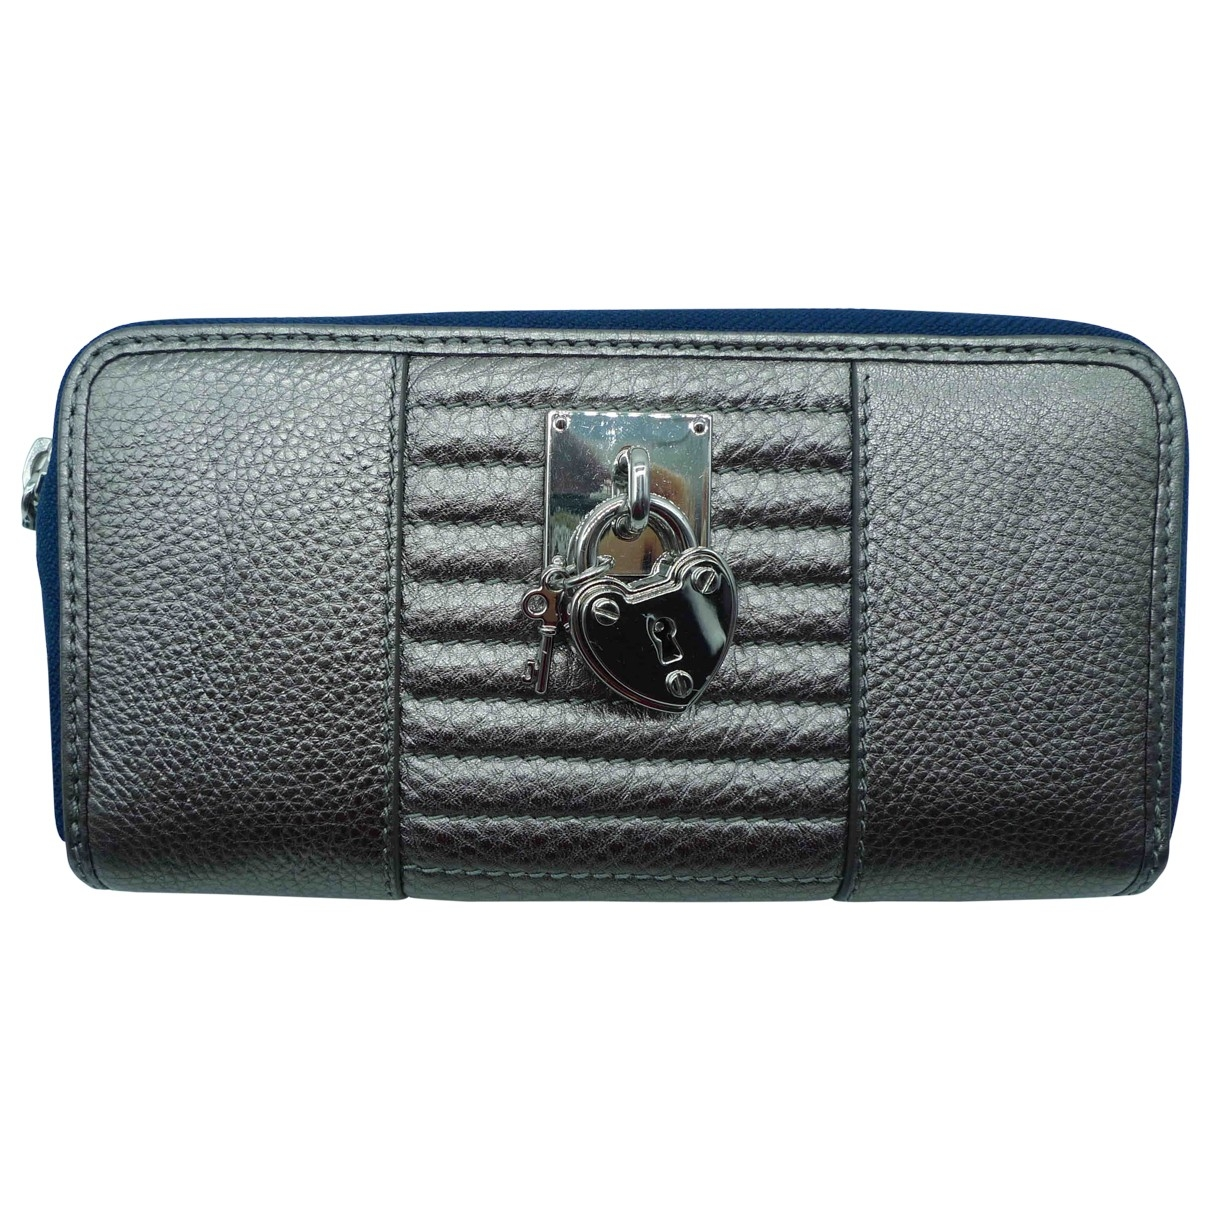 Juicy Couture \N Silver Leather wallet for Women \N